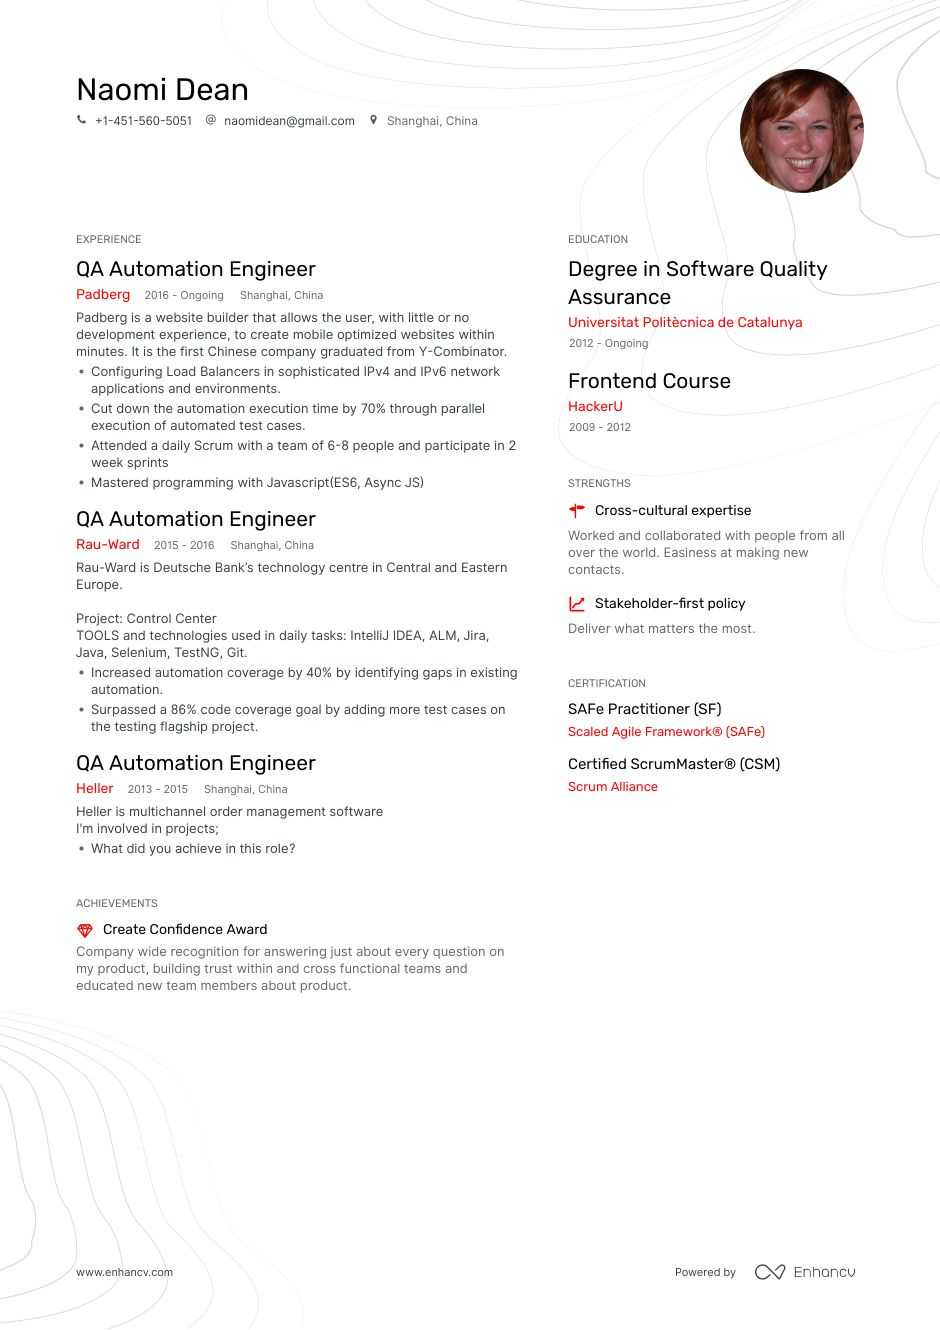 qa automation resume example for enhancv engineer template objective promotion examples Resume Automation Engineer Resume Template